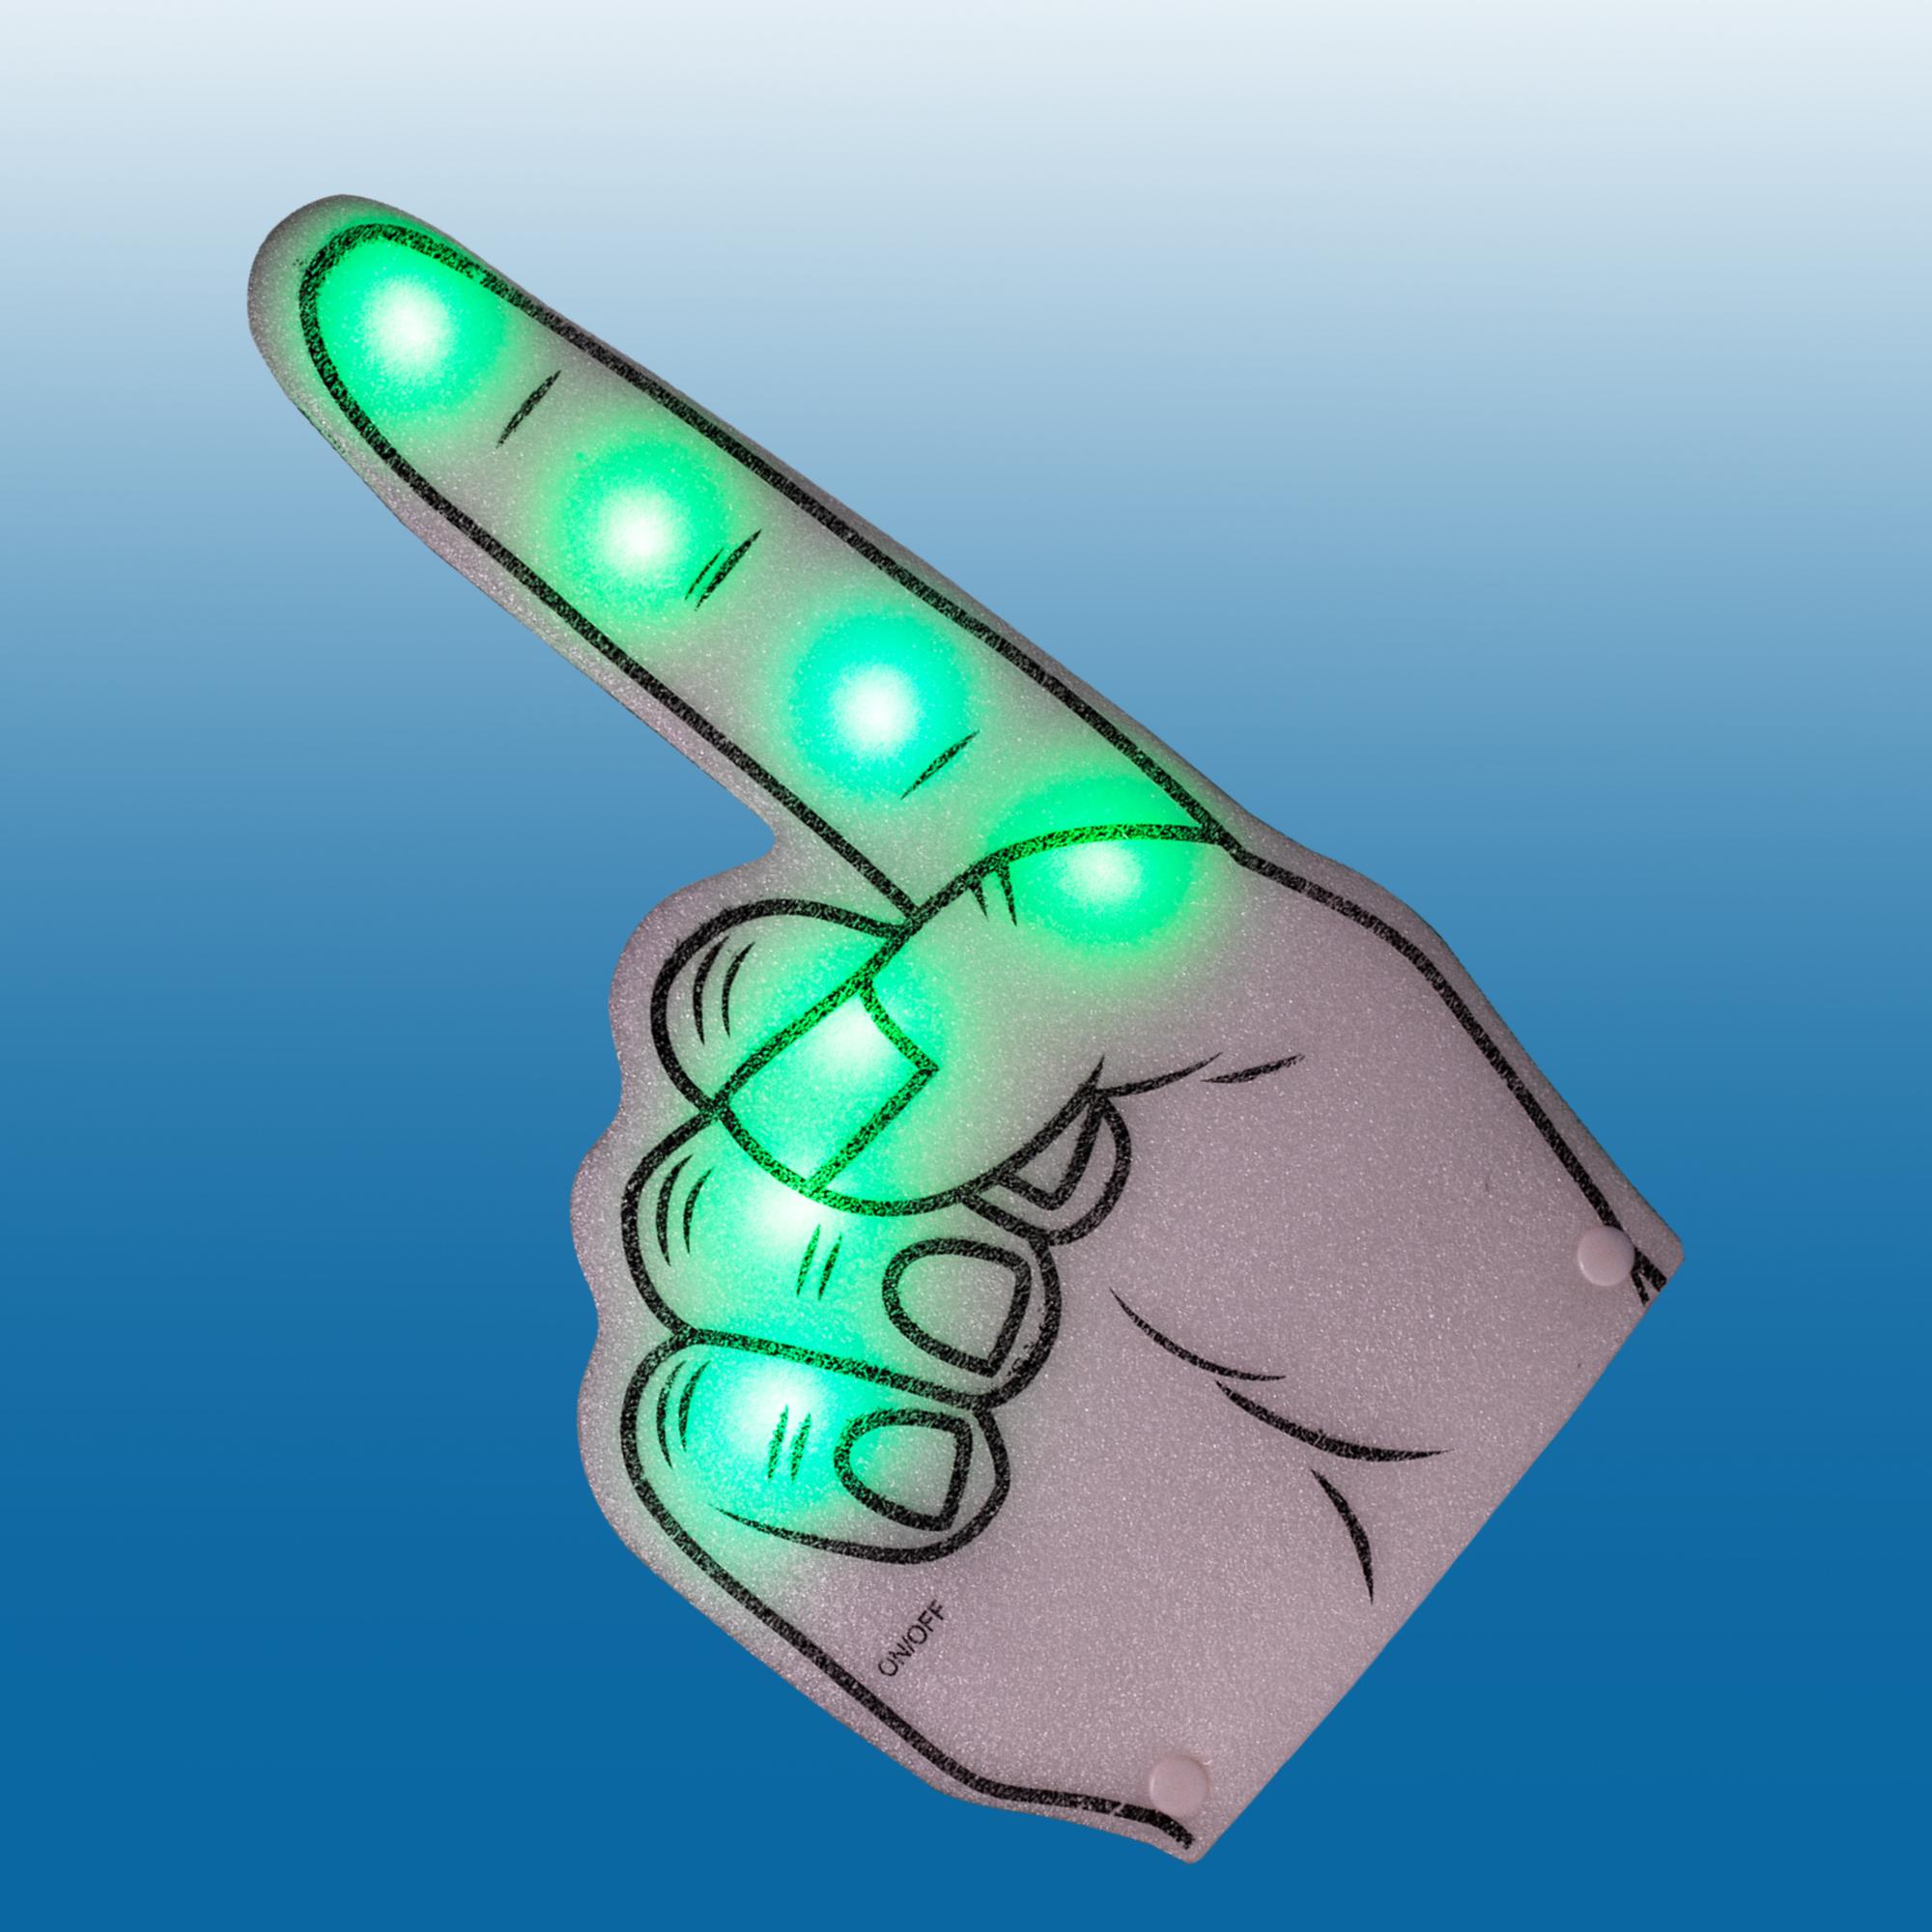 Fun Central AI630 LED Light Up Foam Finger - Green